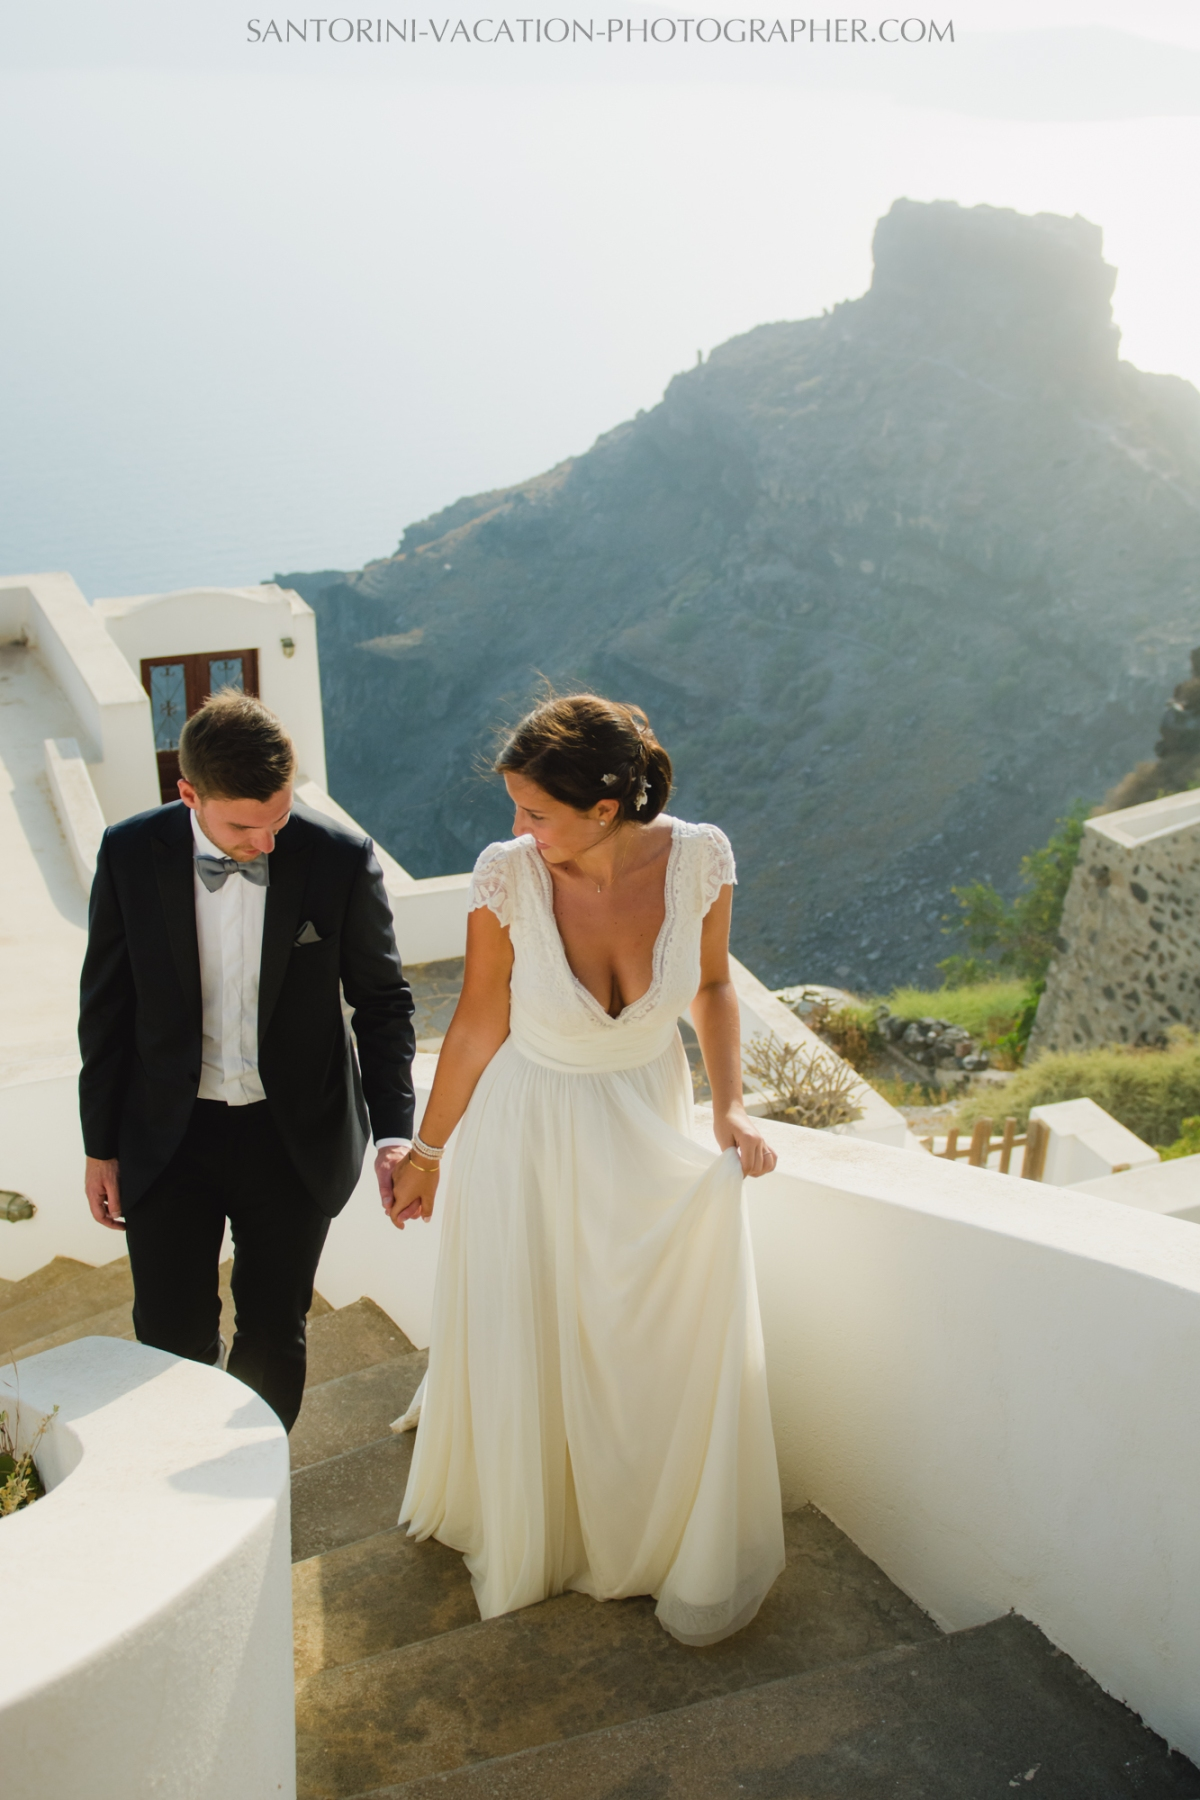 photo-session-santorini-caldera-honeymoon-wedding-dress-4